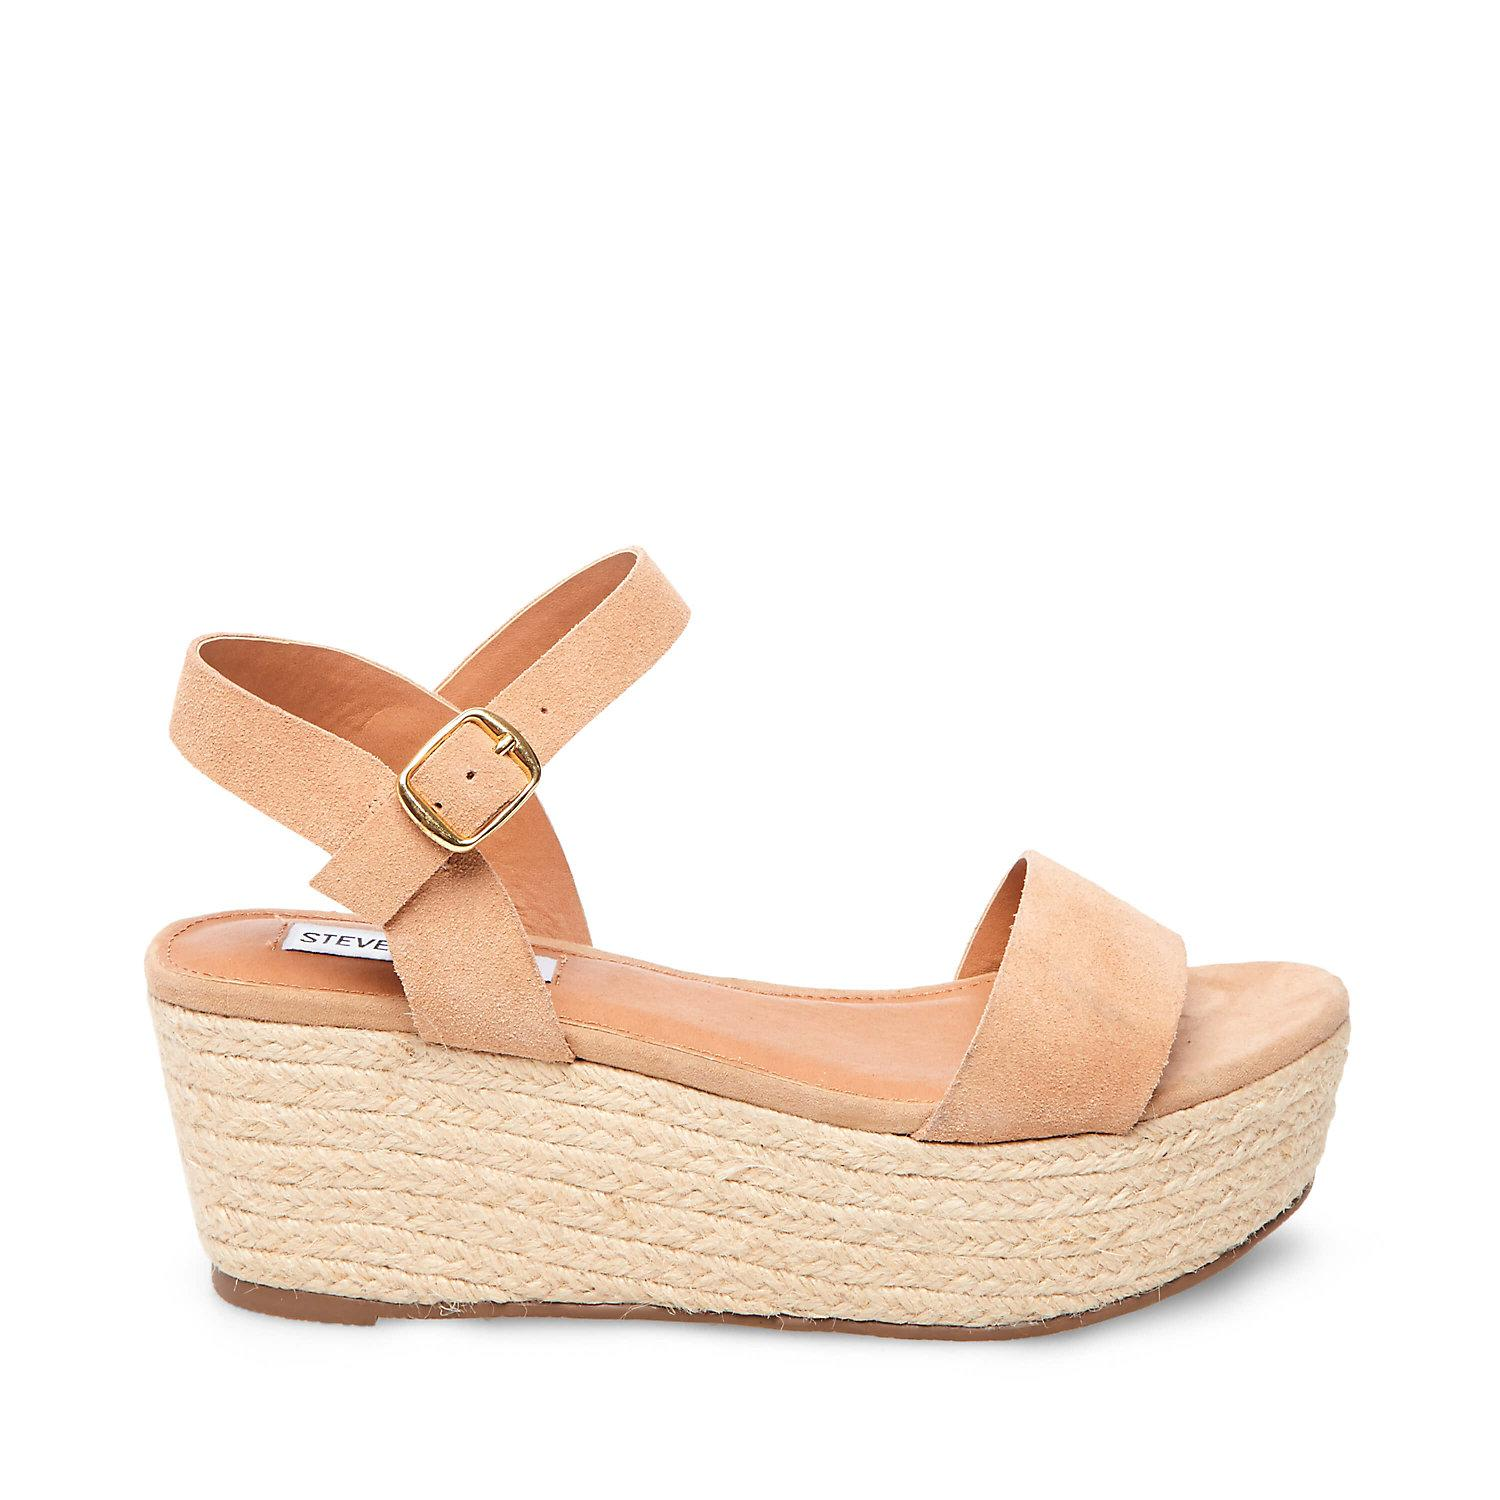 bbee5359354 Lyst - Steve Madden Busy in Natural